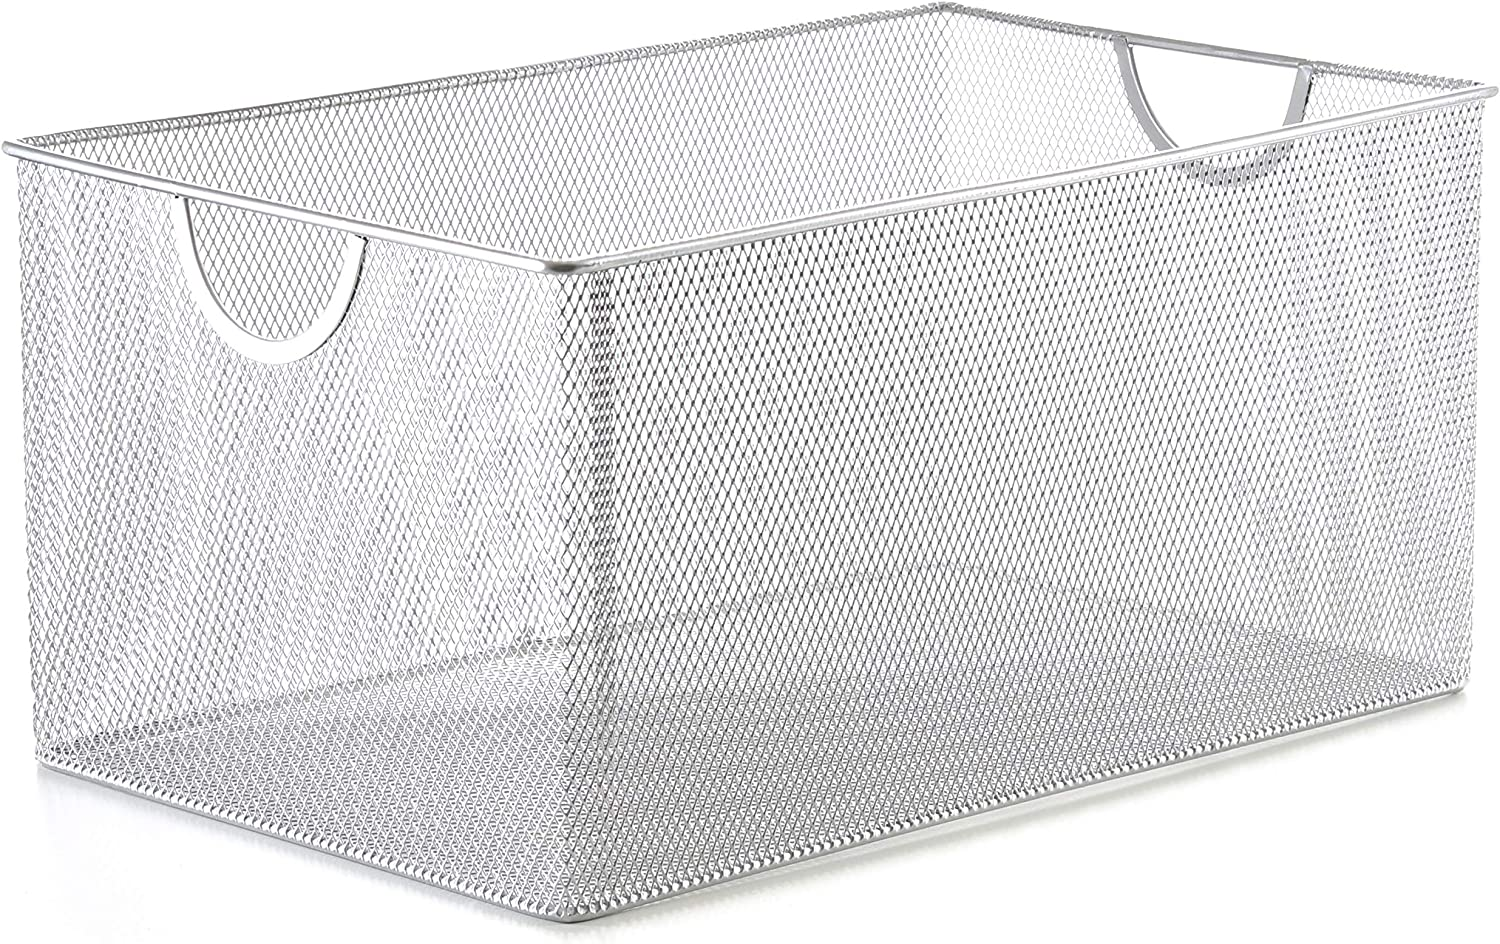 YBM Home 2321 Mesh Open Bin Storage Basket Organizer